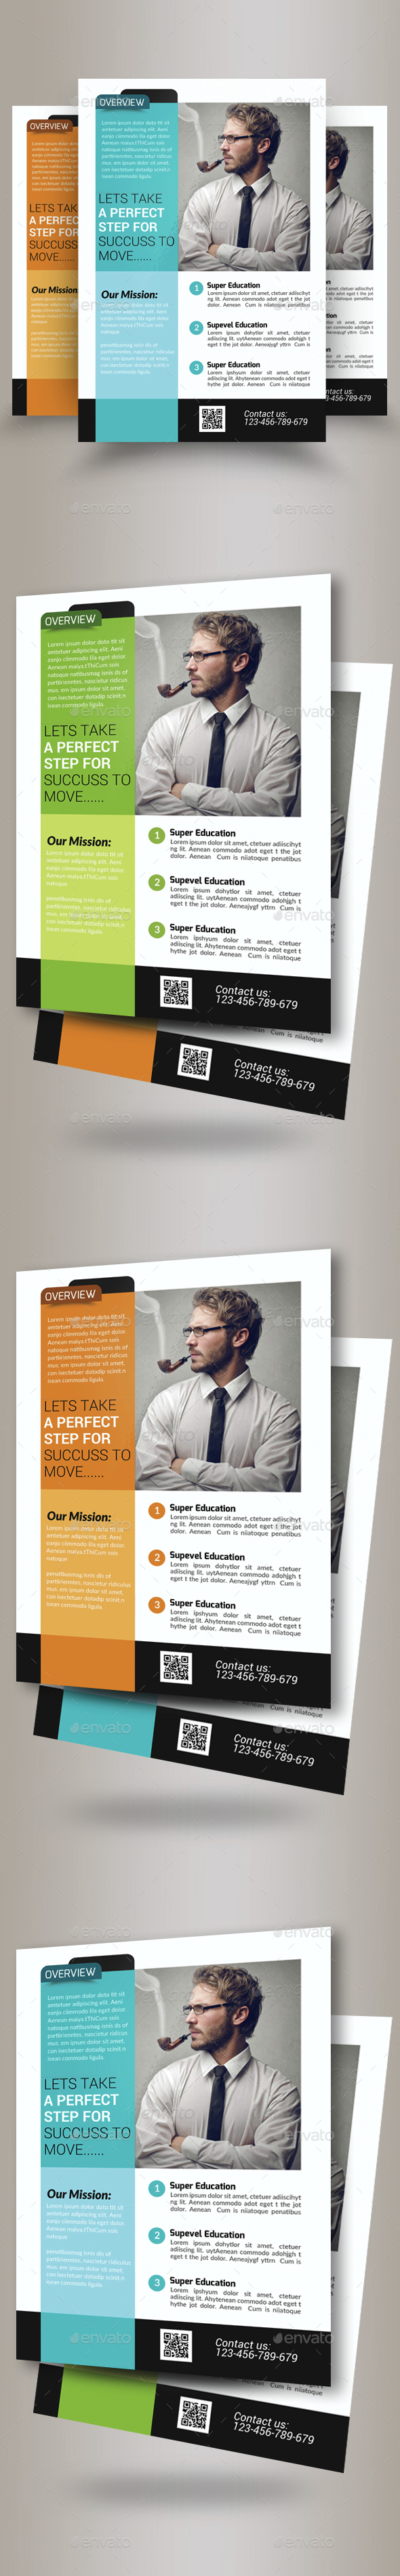 Insurance Company Business Flyer Template - Corporate Flyers